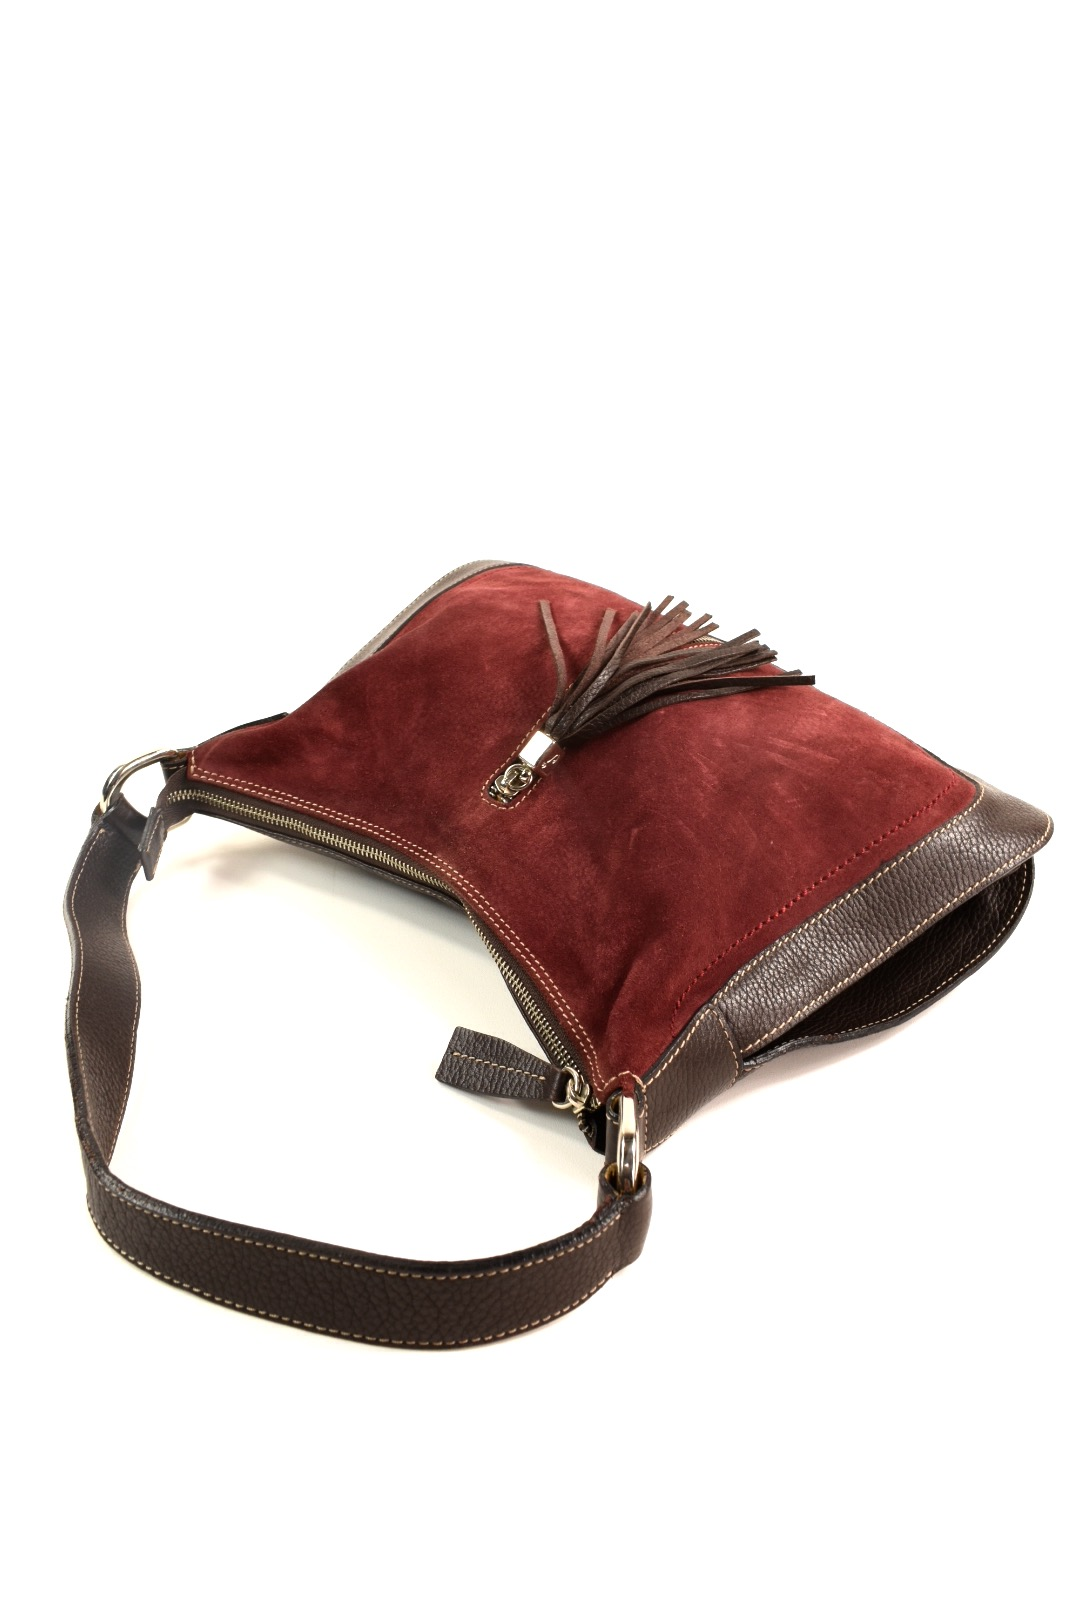 CATS brown leather and suede hobo handbag  ec565e62c1b42